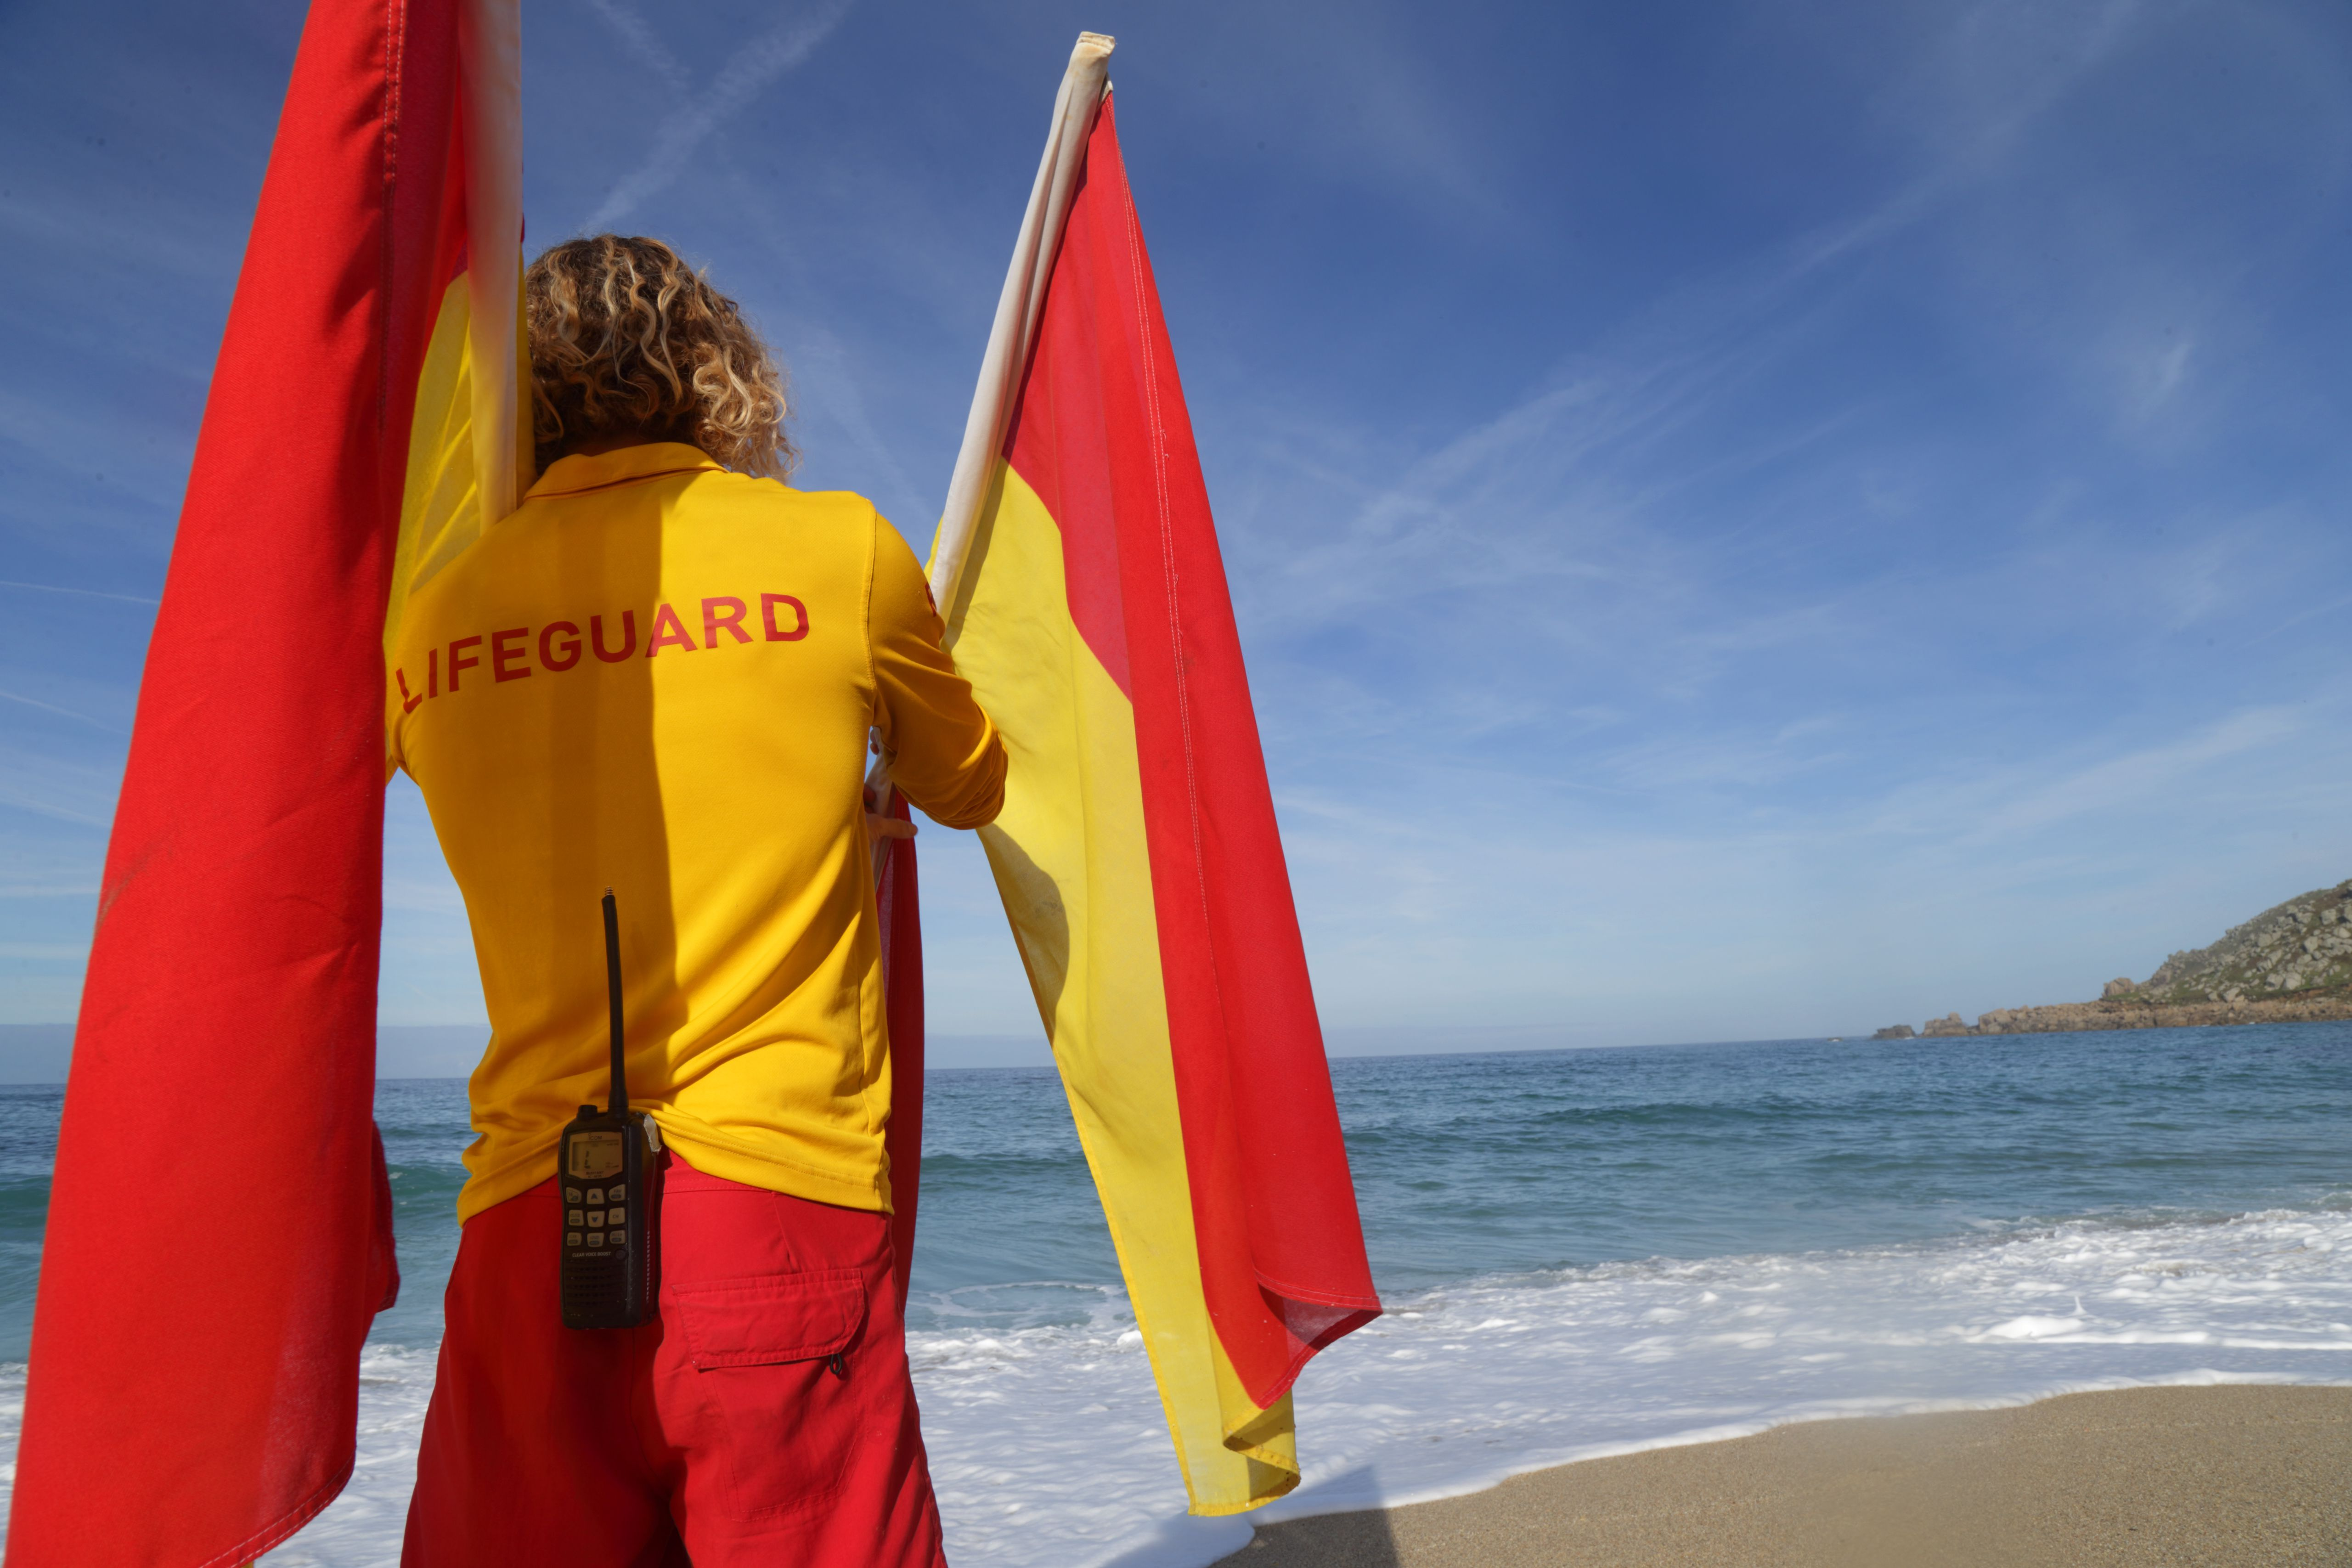 Lifeguard on beach with flags